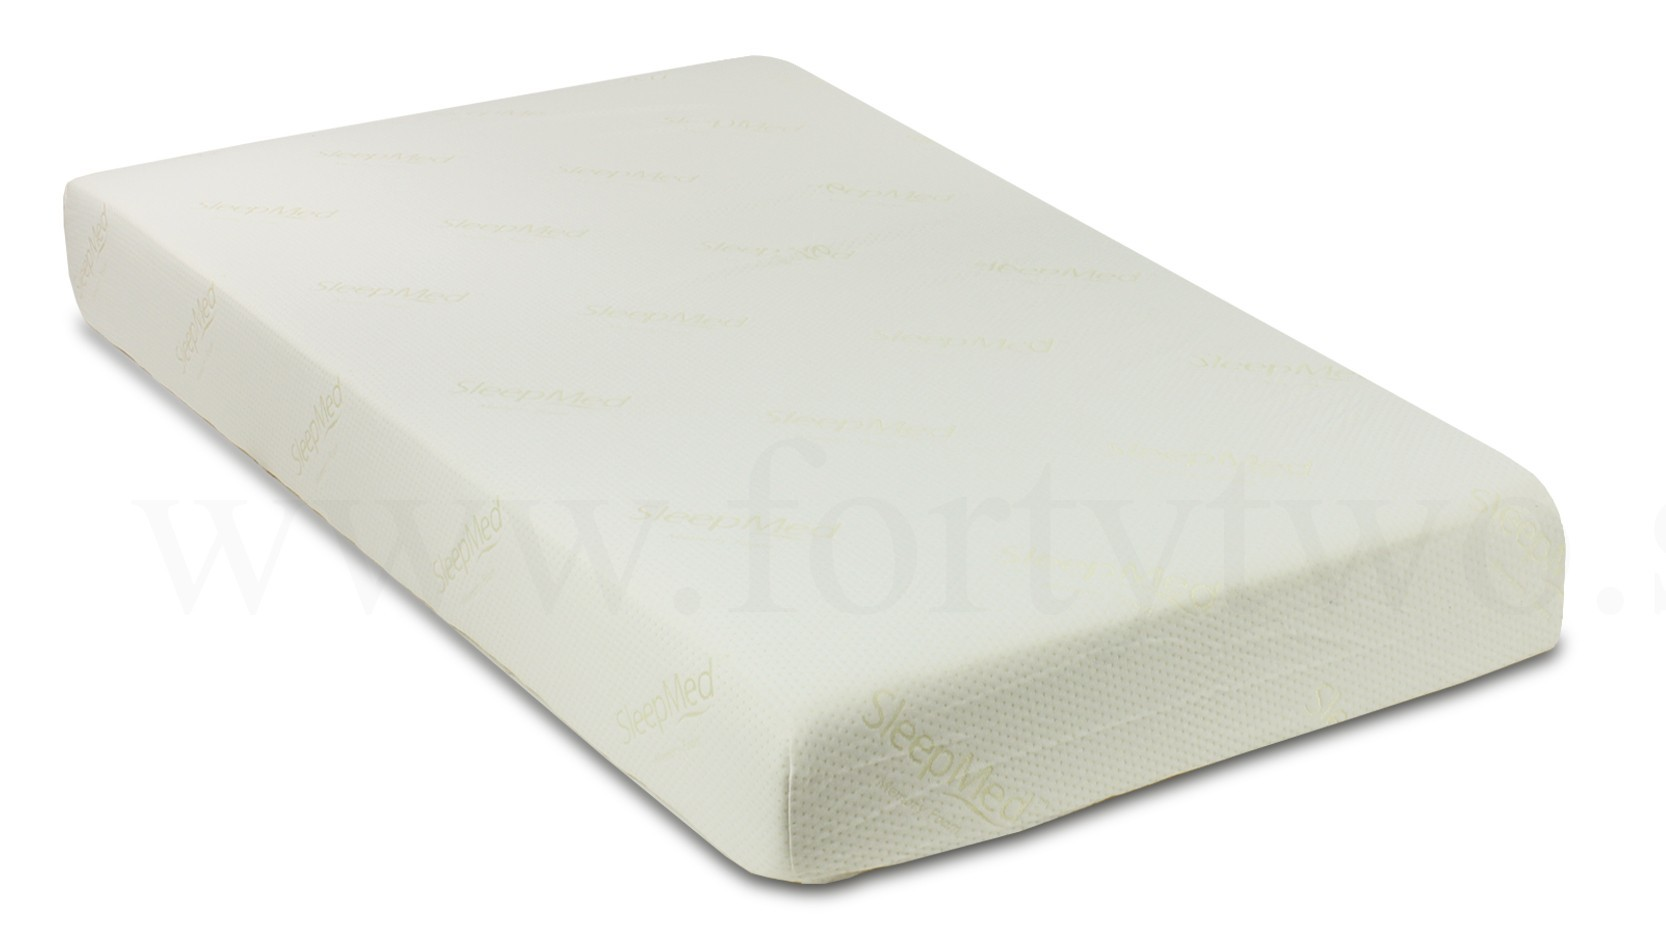 Sleepmed Memory Foam Mattress Super Single In 7 Inch Furniture Home D Cor Fortytwo